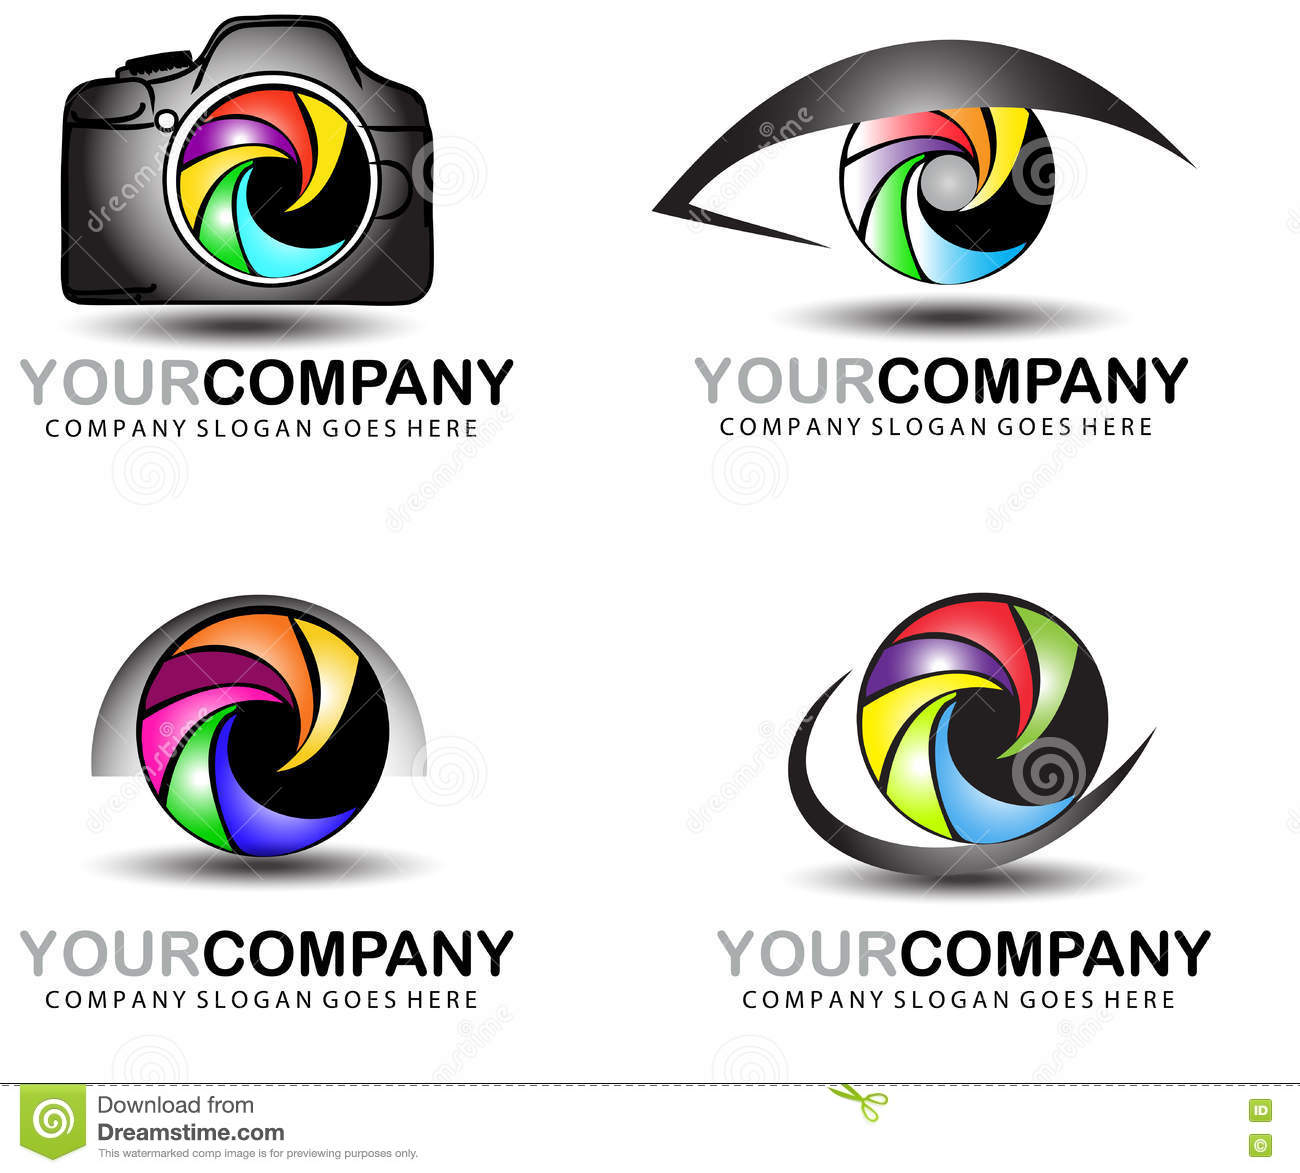 Camera Dslr Camera Logo dslr logo stock photos images pictures 101 camera drawing photography design set royalty free photography